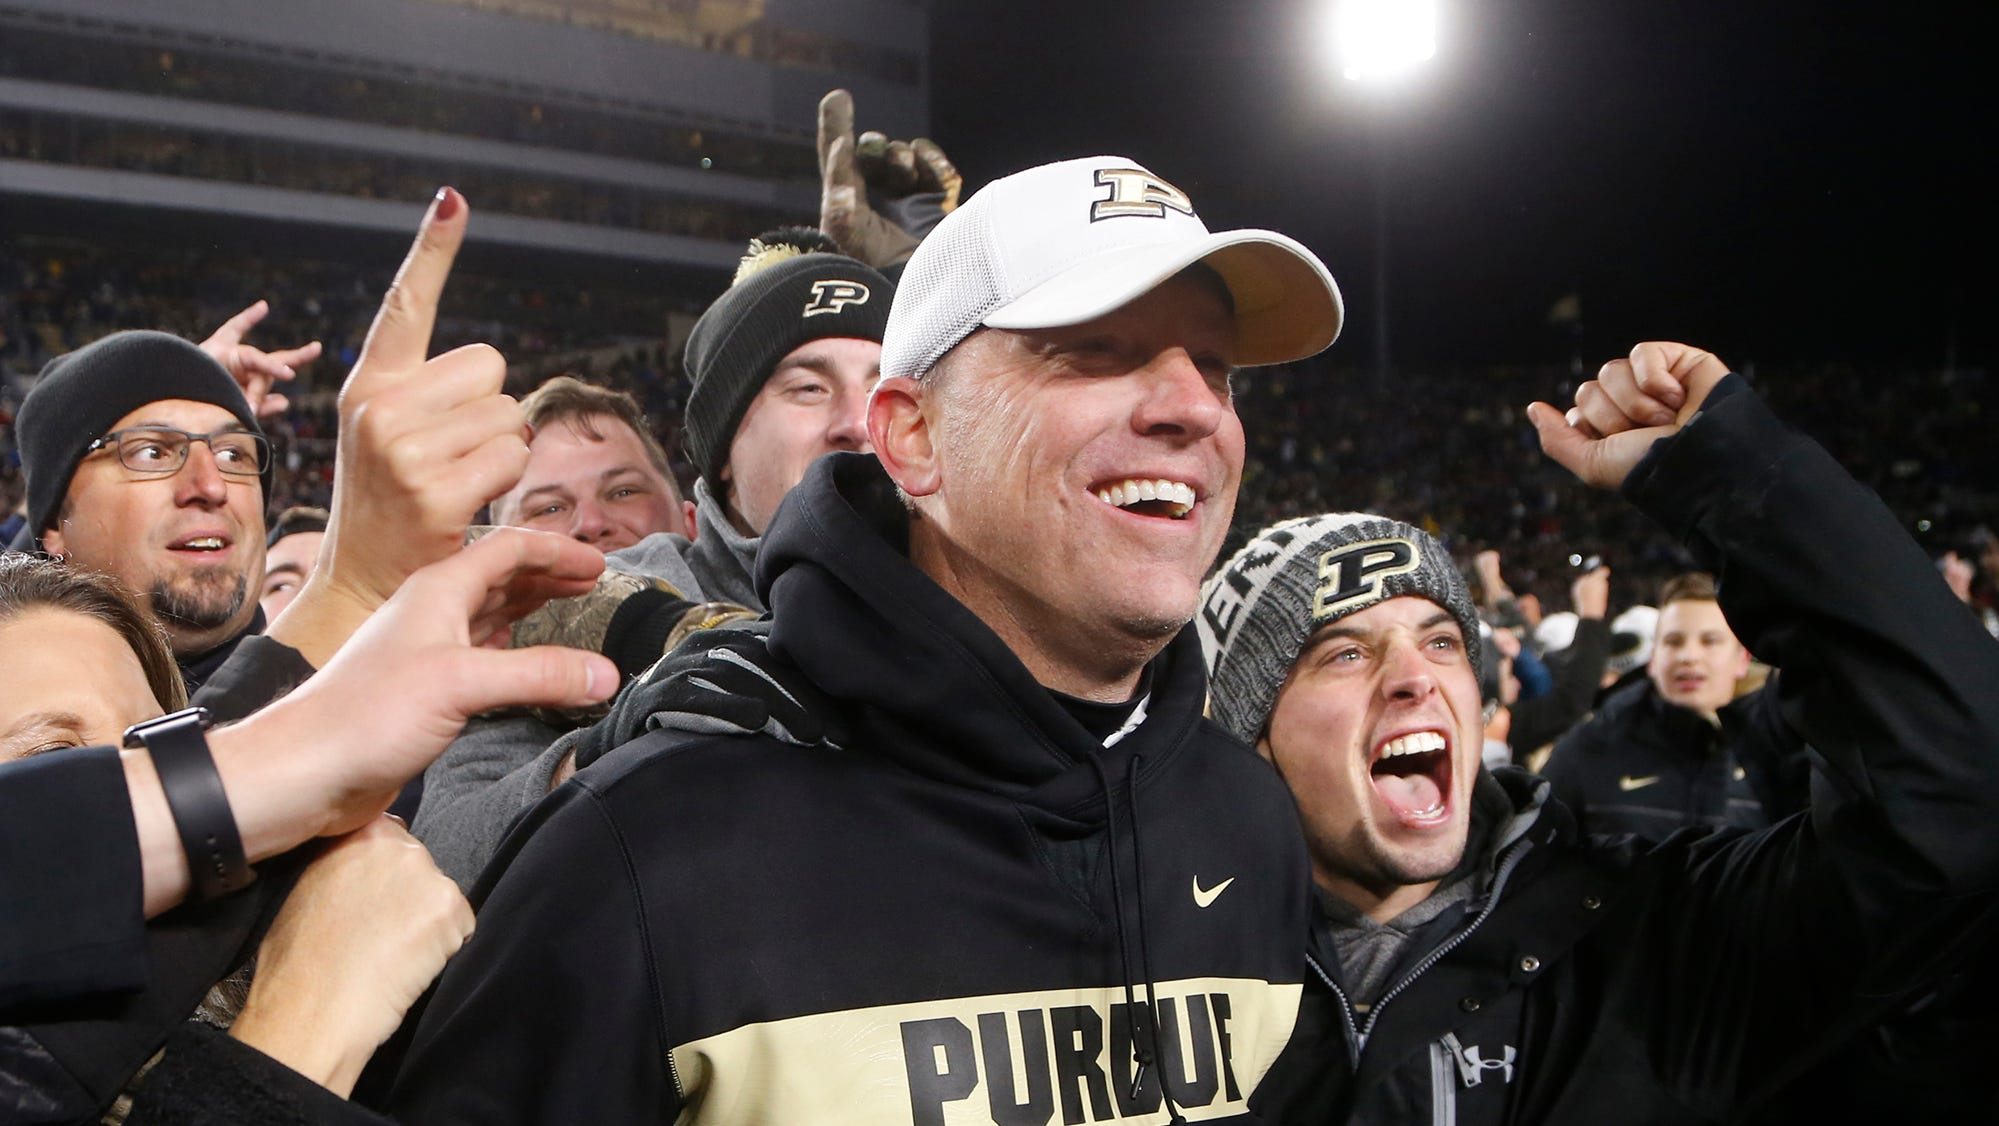 Real life, sports made Ohio State win memorable for Purdue fans